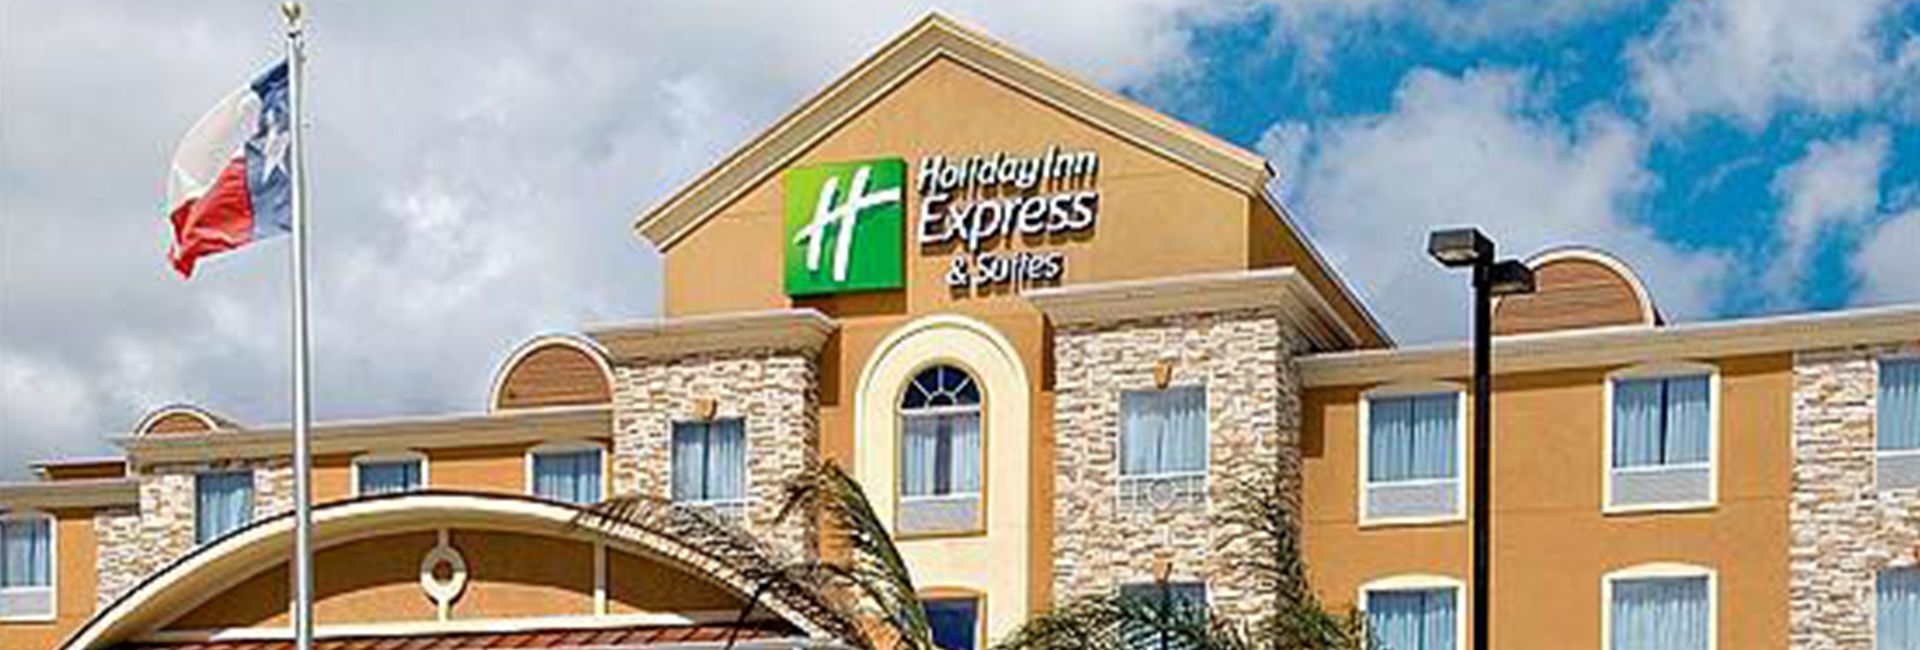 HOLIDAY INN EXPRESS PORT ARANSAS, TEXAS